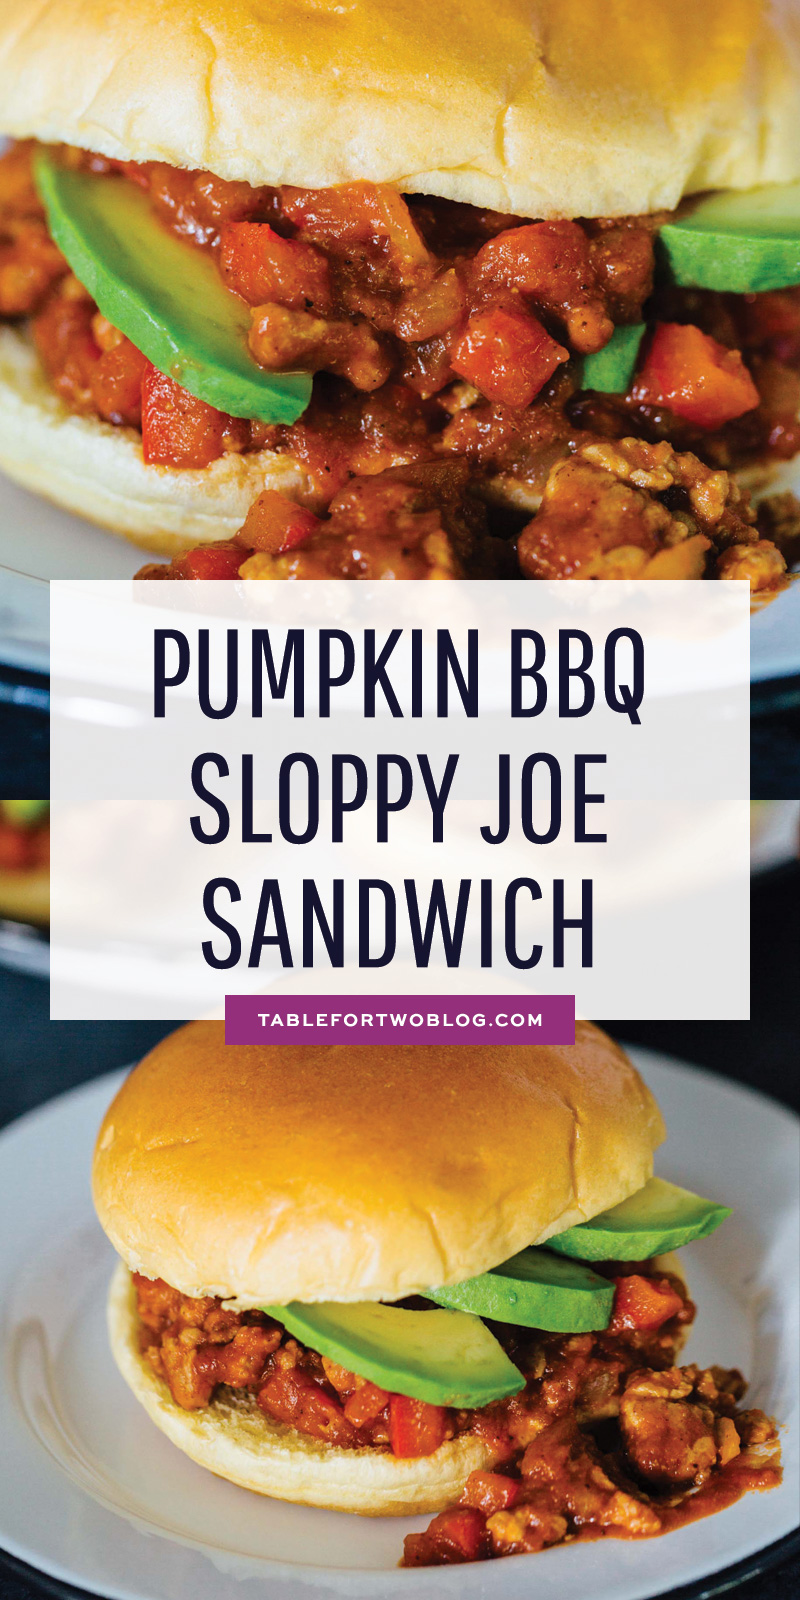 A great way to use pumpkin in a savory way! These pumpkin bbq sloppy joe's are filled with flavor and so easy to make on busy weeknights! #sloppyjoes #easyweeknightdinner #dinnerrecipe #sandwichrecipe